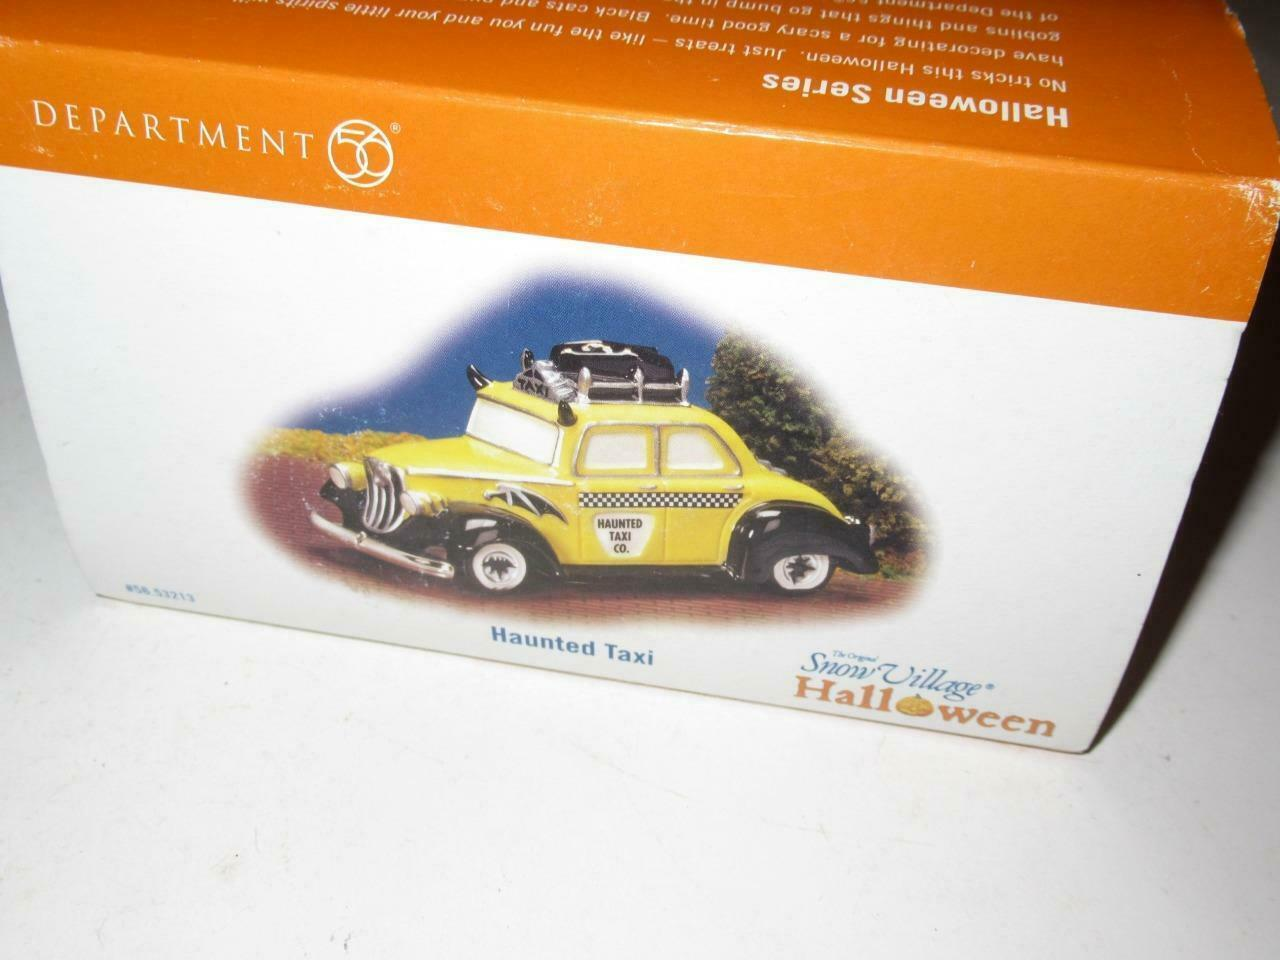 Primary image for DEPT 56- RETIRED- 58-53213 - HAUNTED TAXI- NEW IN THE BOX - H49